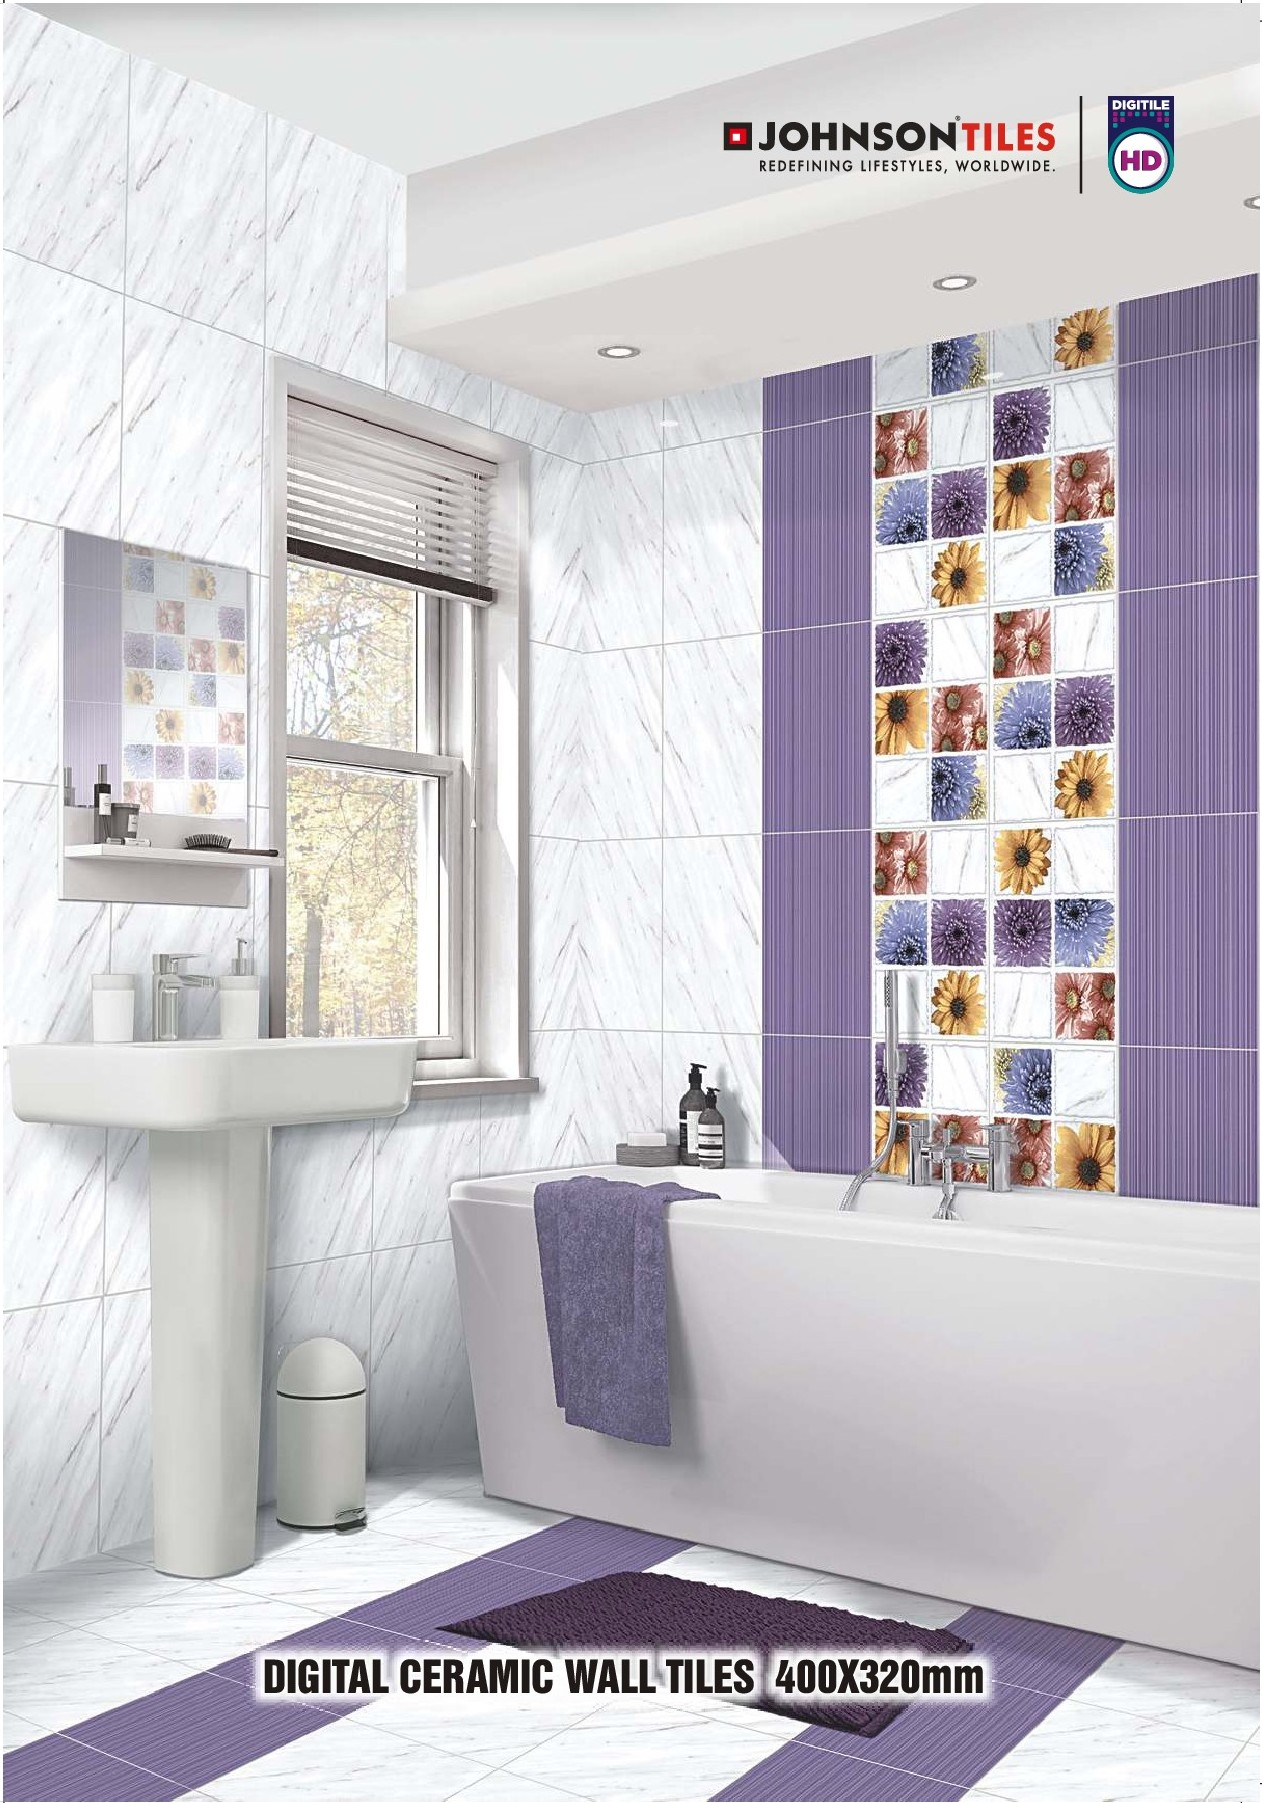 Bathroom Tiles Johnson johnson tiles catalogues - ceramic, vitrified, glazed vitrified at